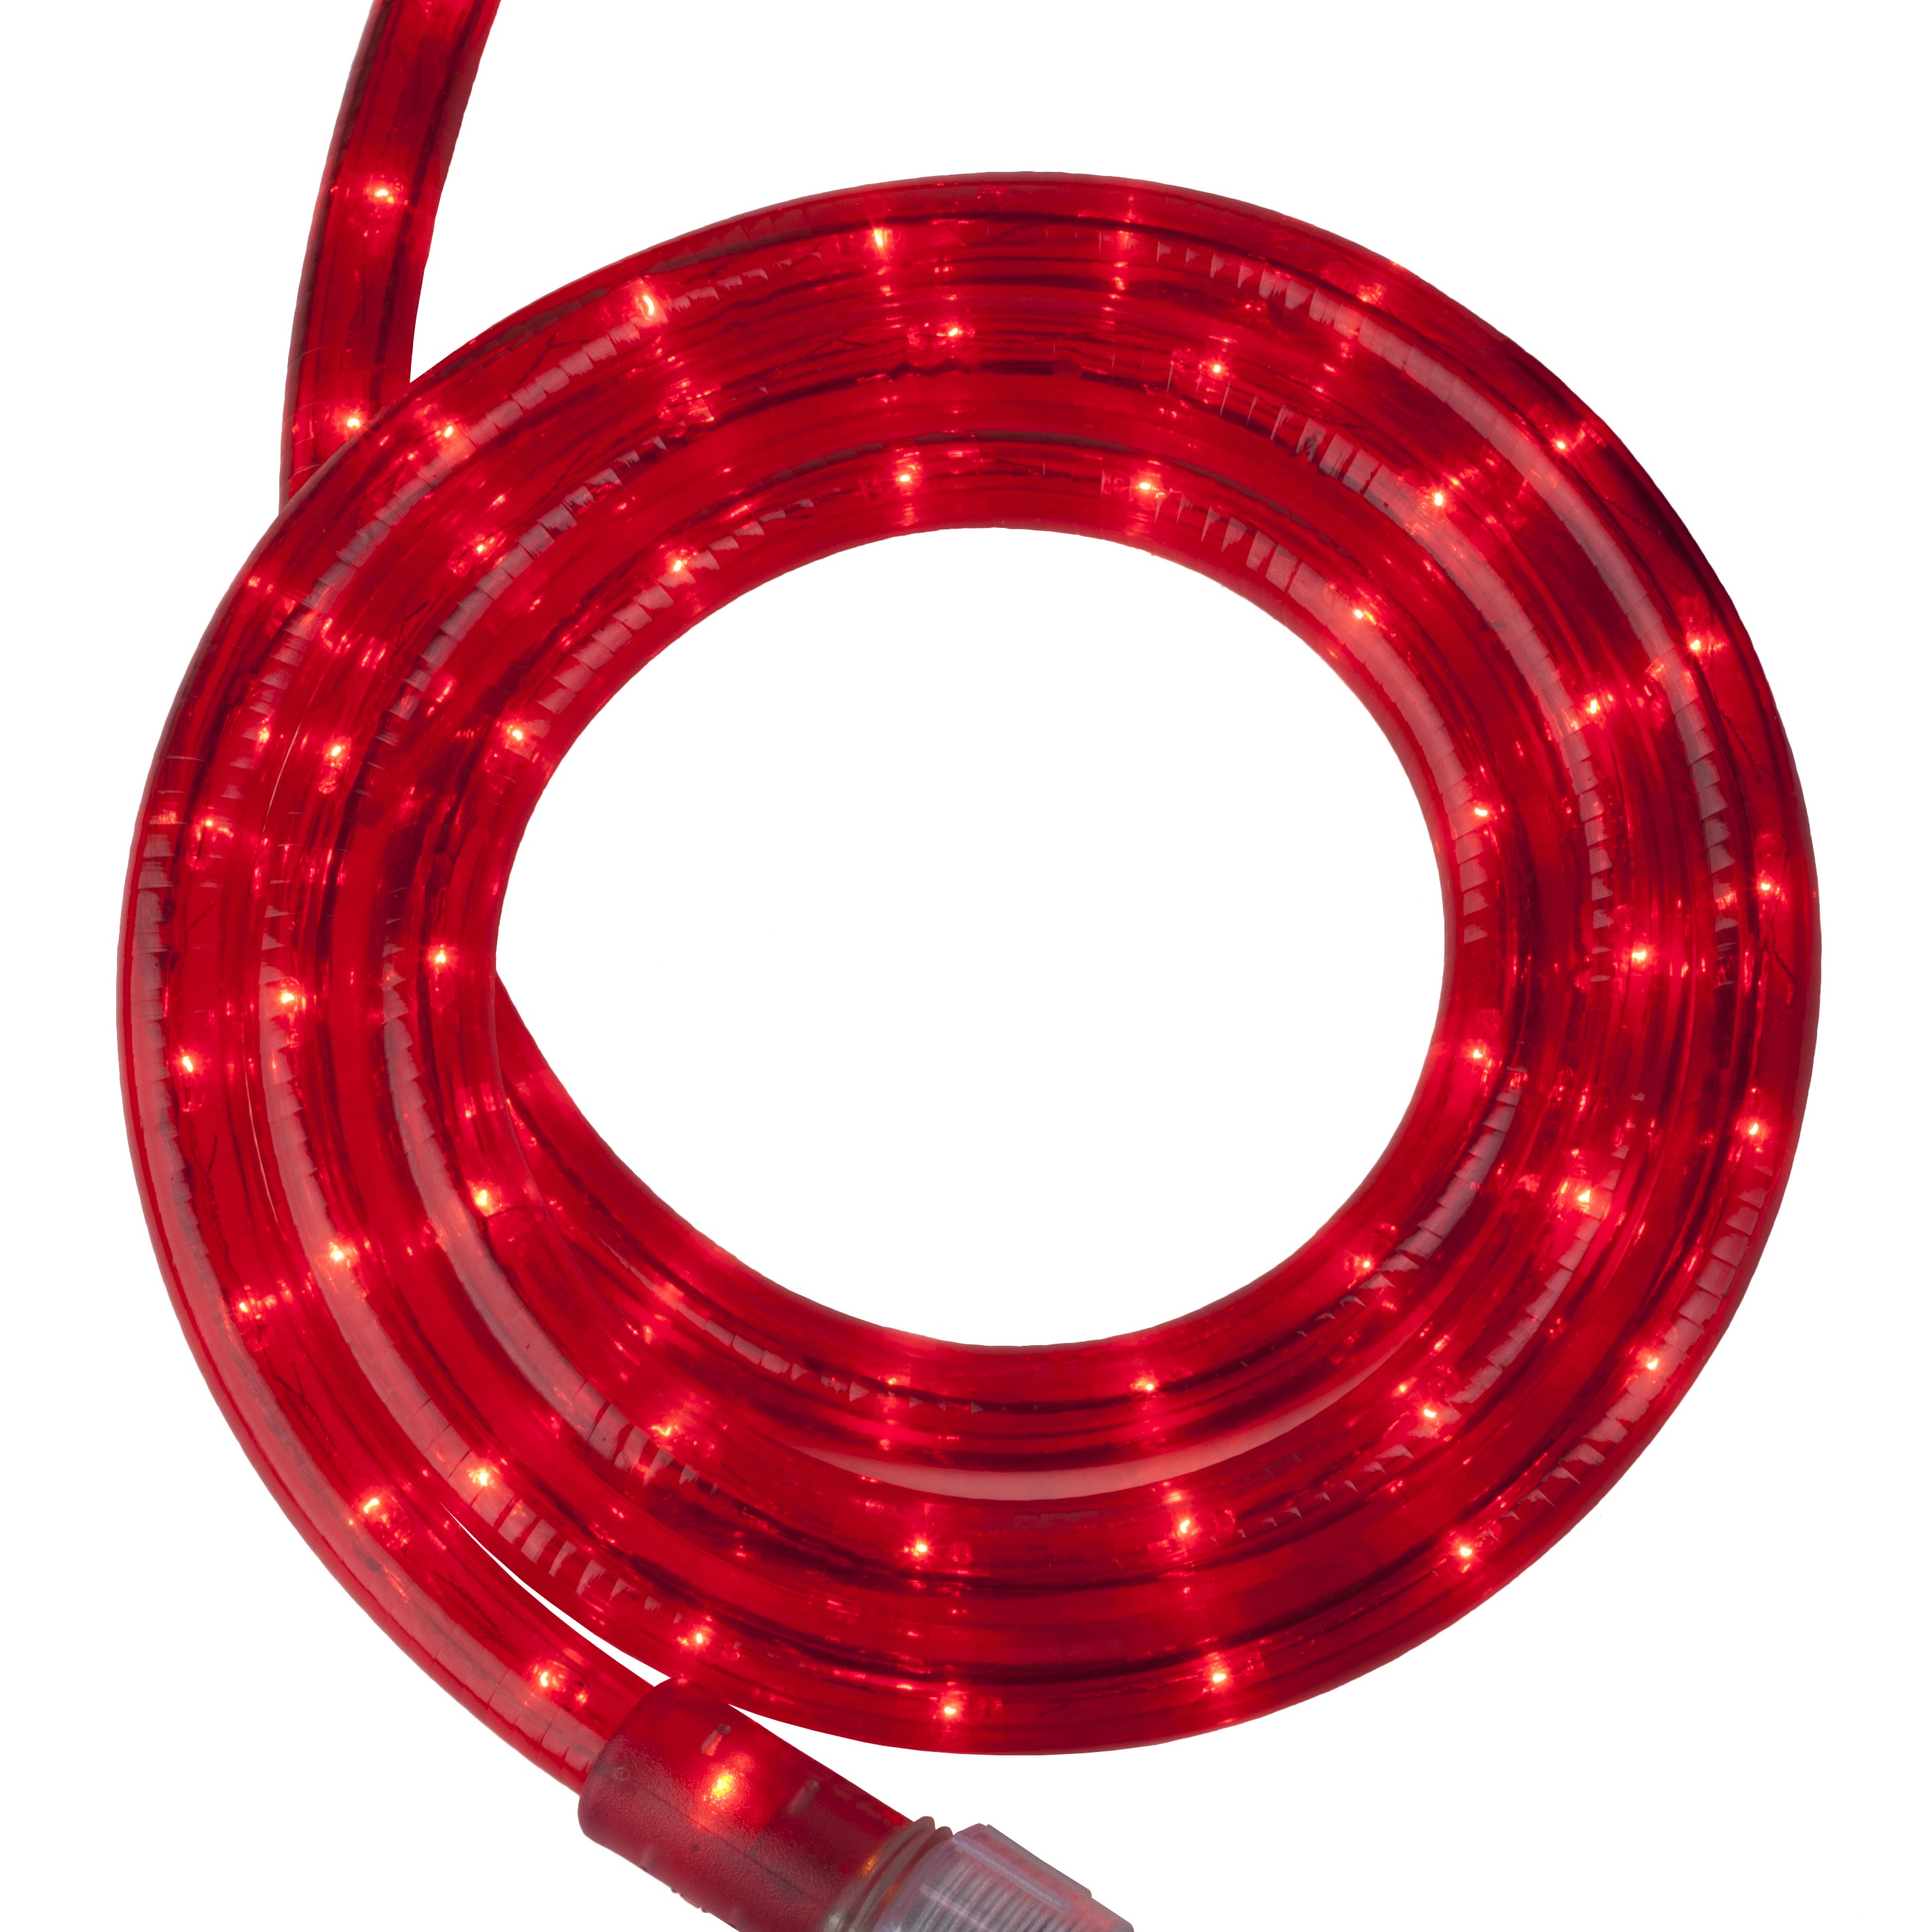 Commercial Outdoor String Lights picture on 2 Wire 12 inch 13mm Red Rope Light 30 Feet UL Listed  14962 with Commercial Outdoor String Lights, Outdoor Lighting ideas 1aeec1869ca456eb389e9e16384b8e3c